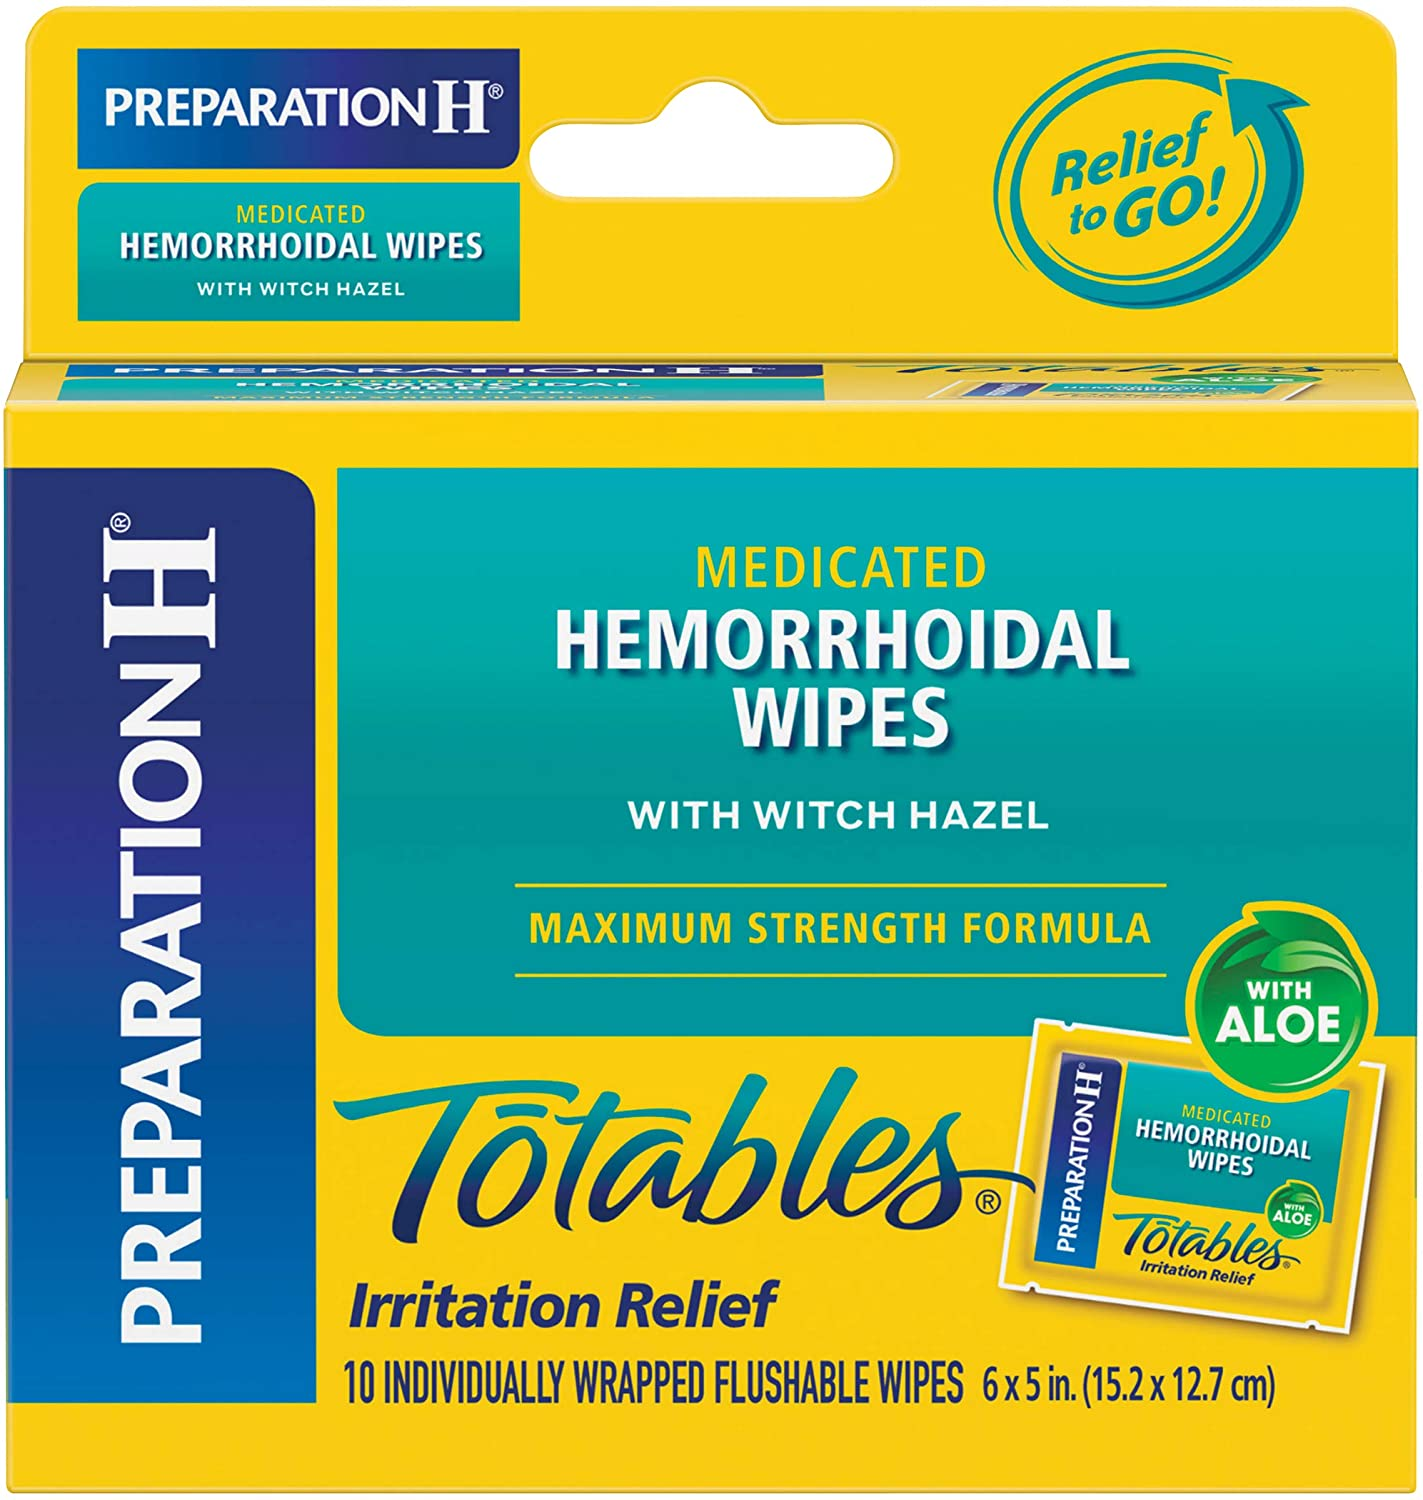 Preparation H (10 Count) Flushable Medicated Hemorrhoid Wipes, Maximum Strength Relief with Witch Hazel, Irritation Relief Wipes to Go: Health & Personal Care